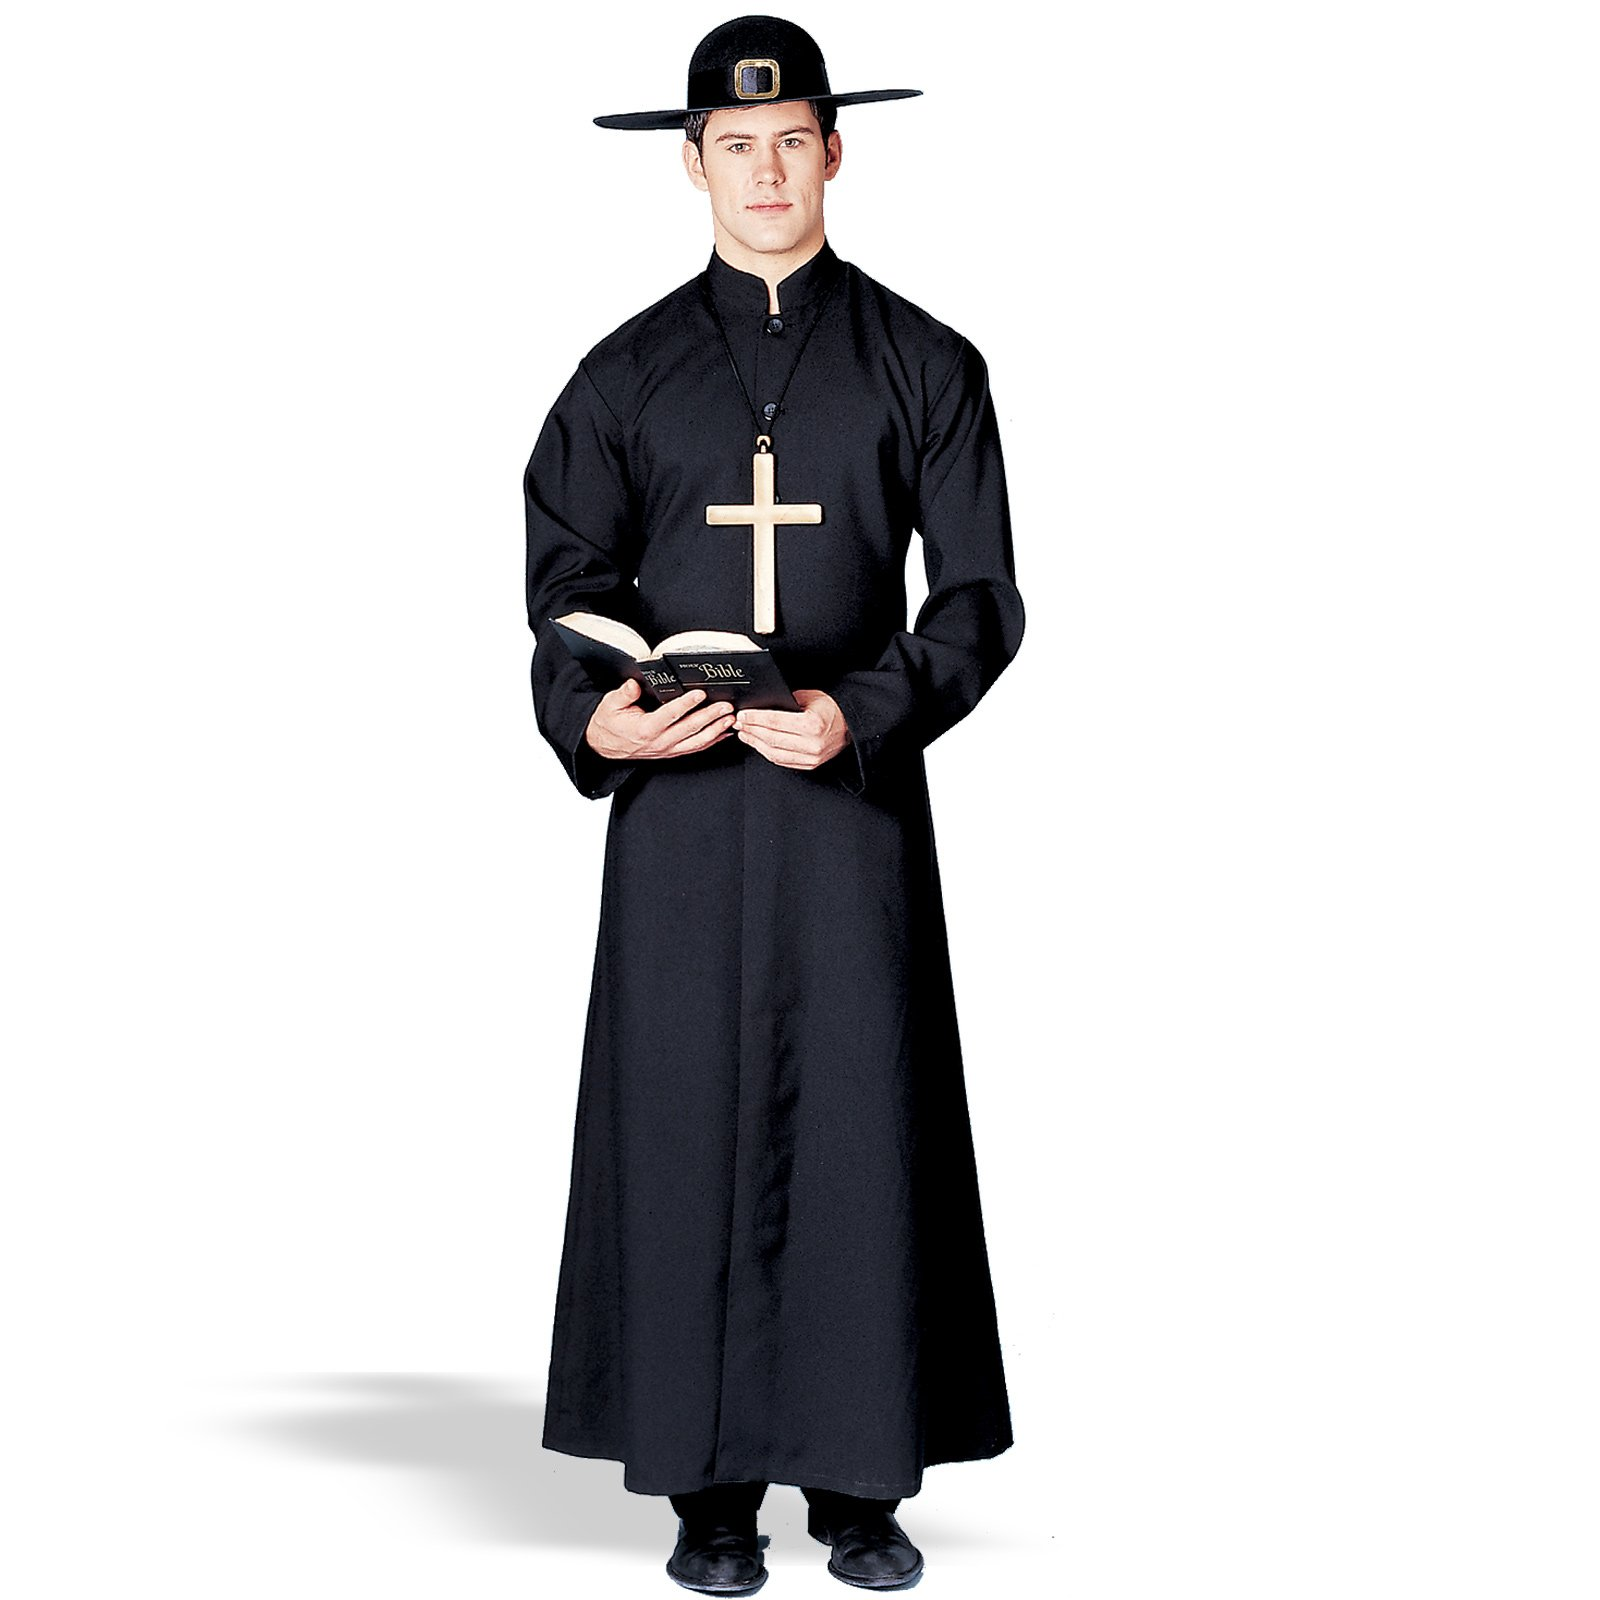 Priest - 02 photo